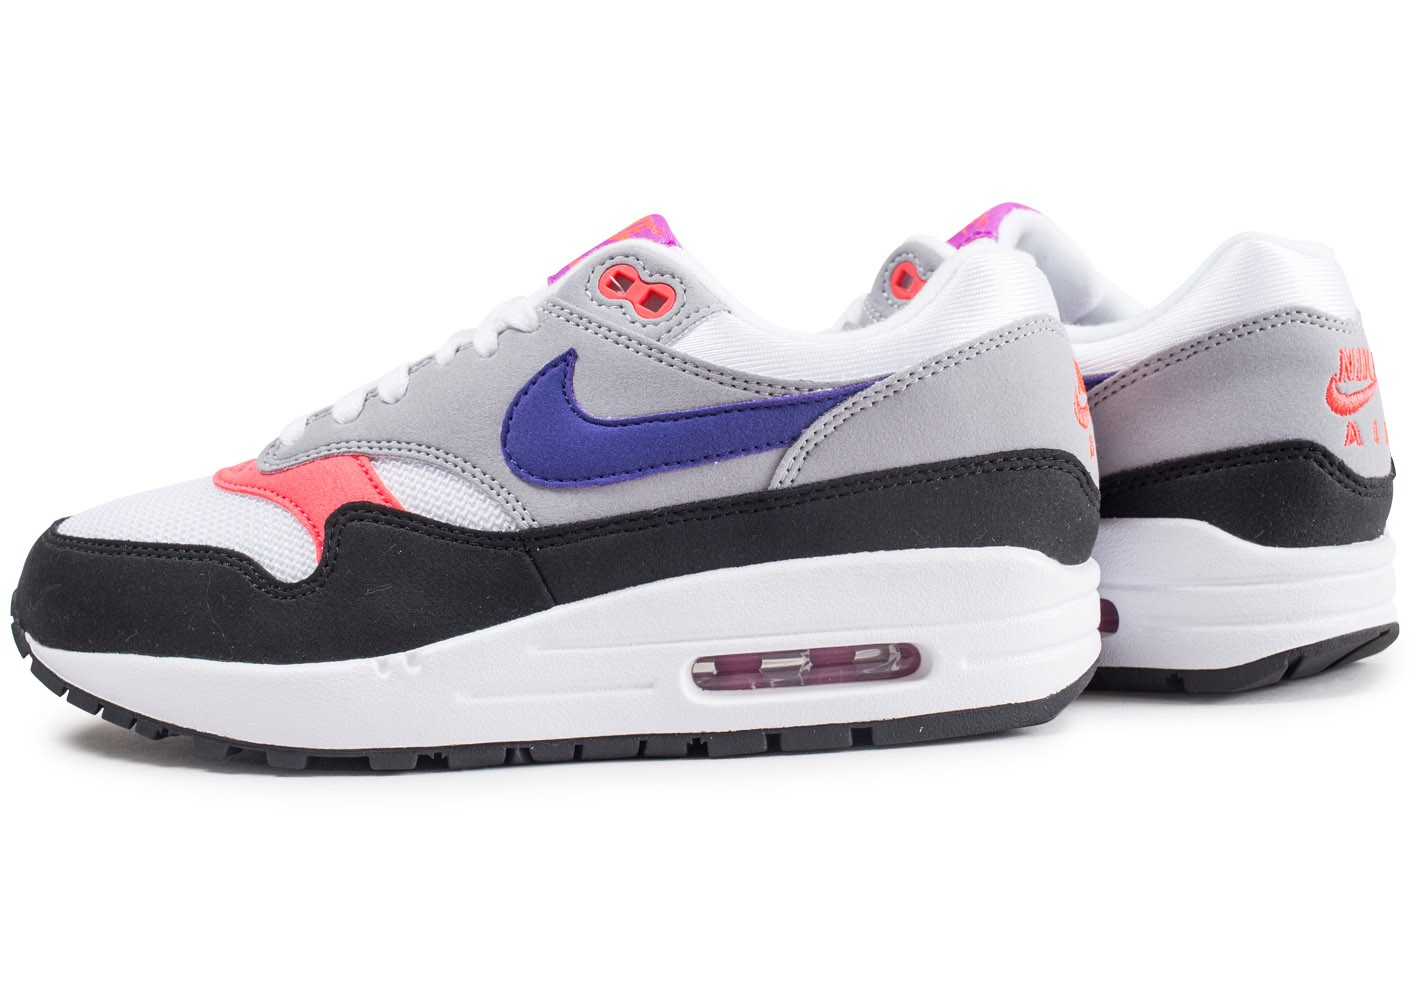 Flash Baskets 1 Air Pink Chaussures Chausport Femme Nike Max qUzpGMSV